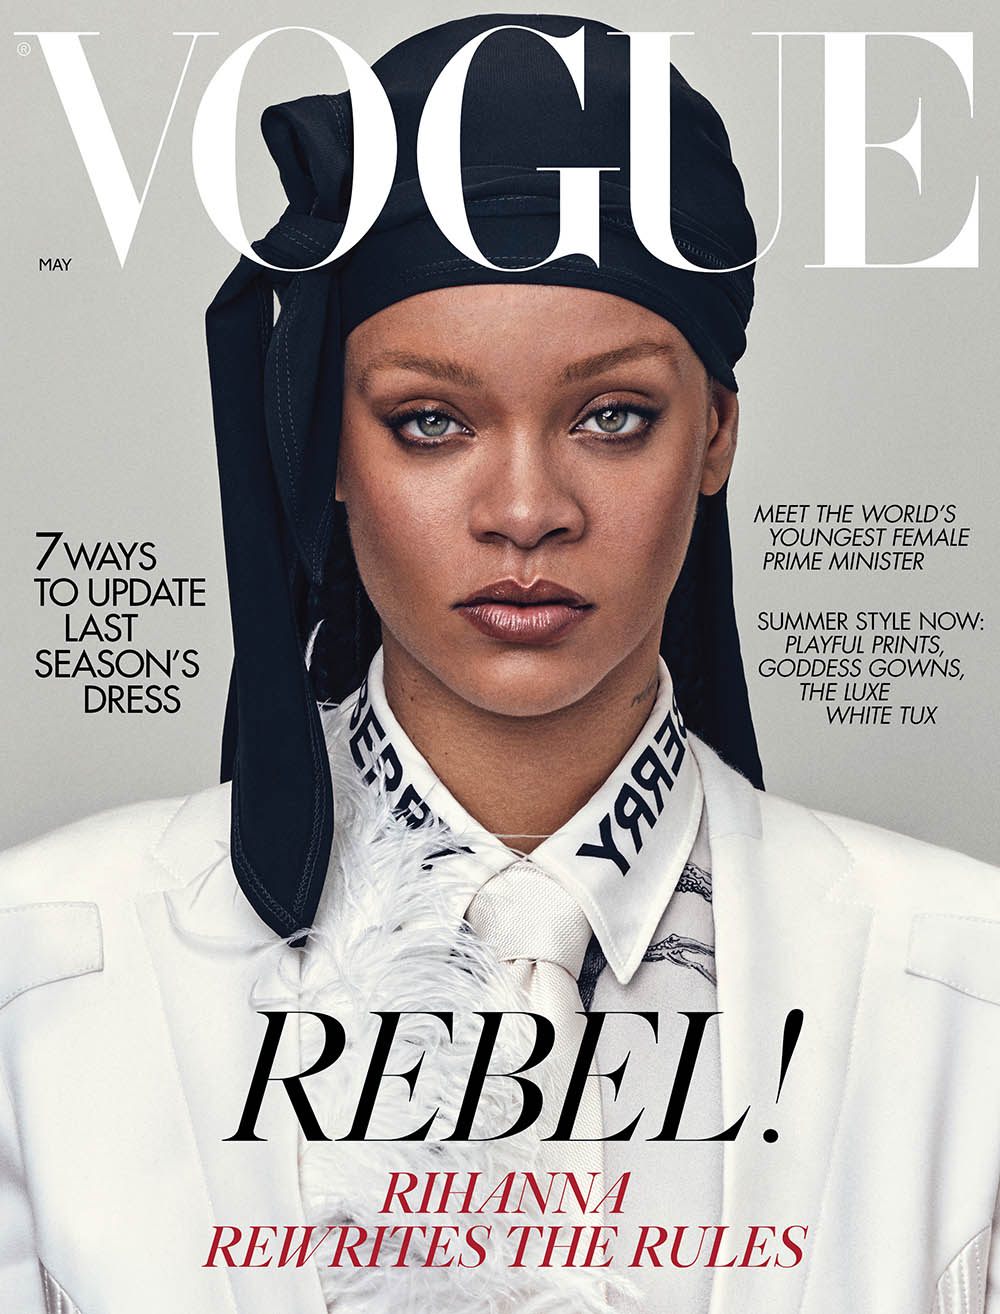 Rihanna covers British Vogue May 2020 by Steven Klein